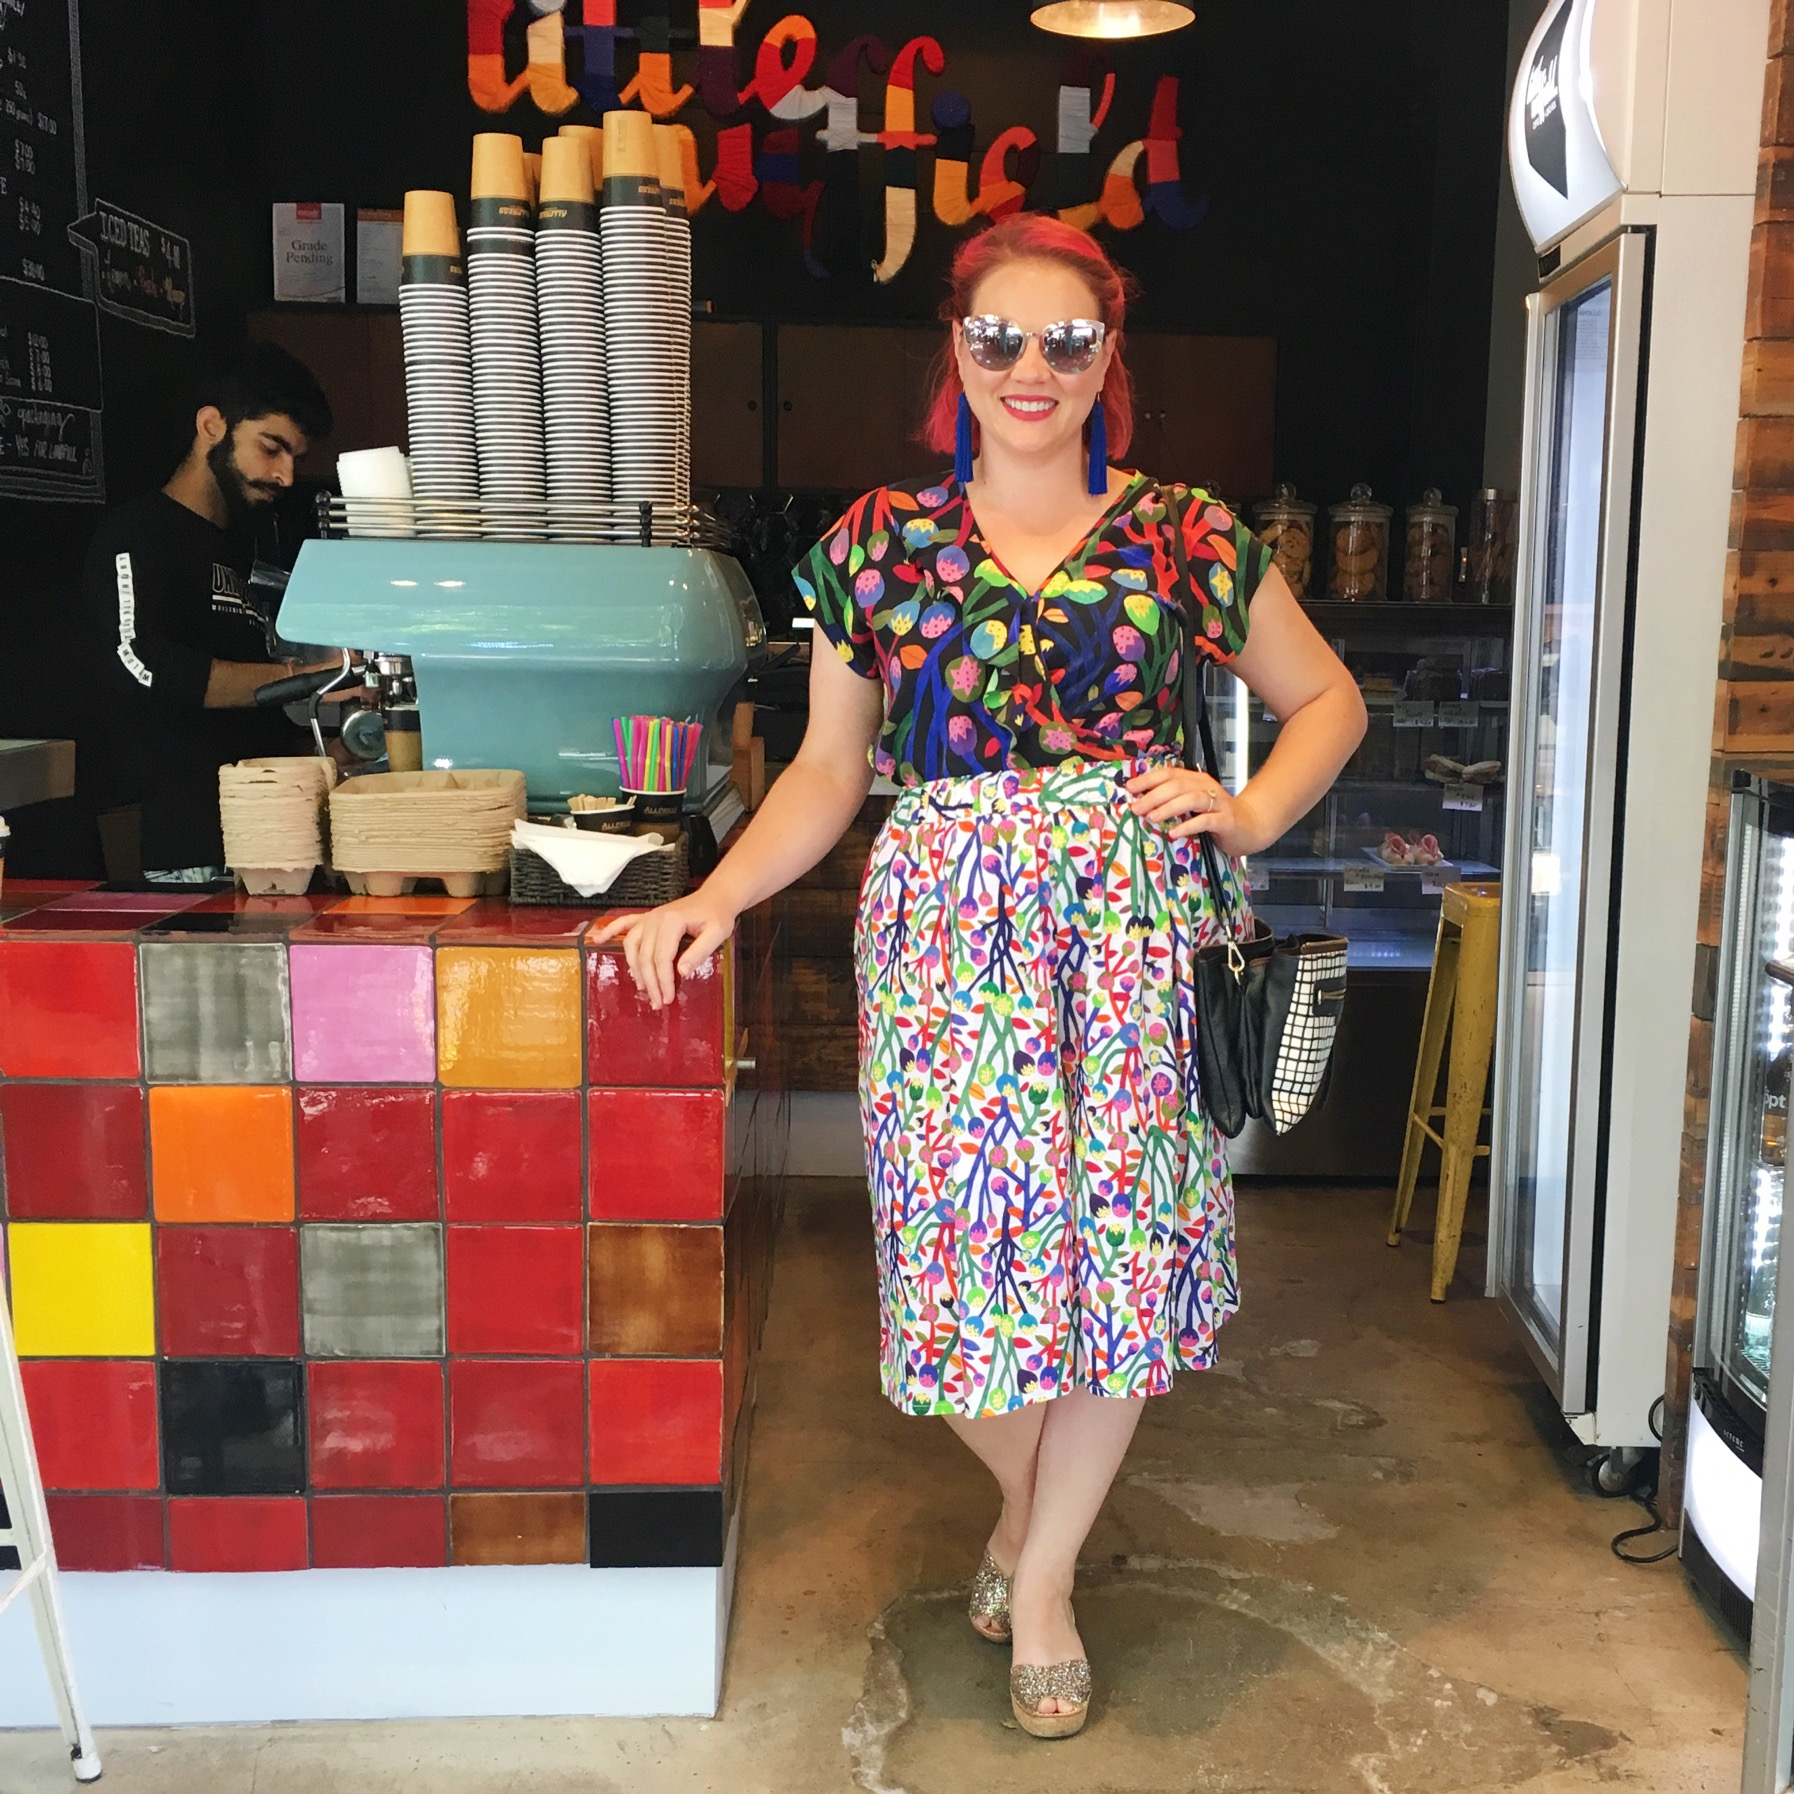 Gorman top and culottes, Quay sunglasses, Lovelee Soles shoes.